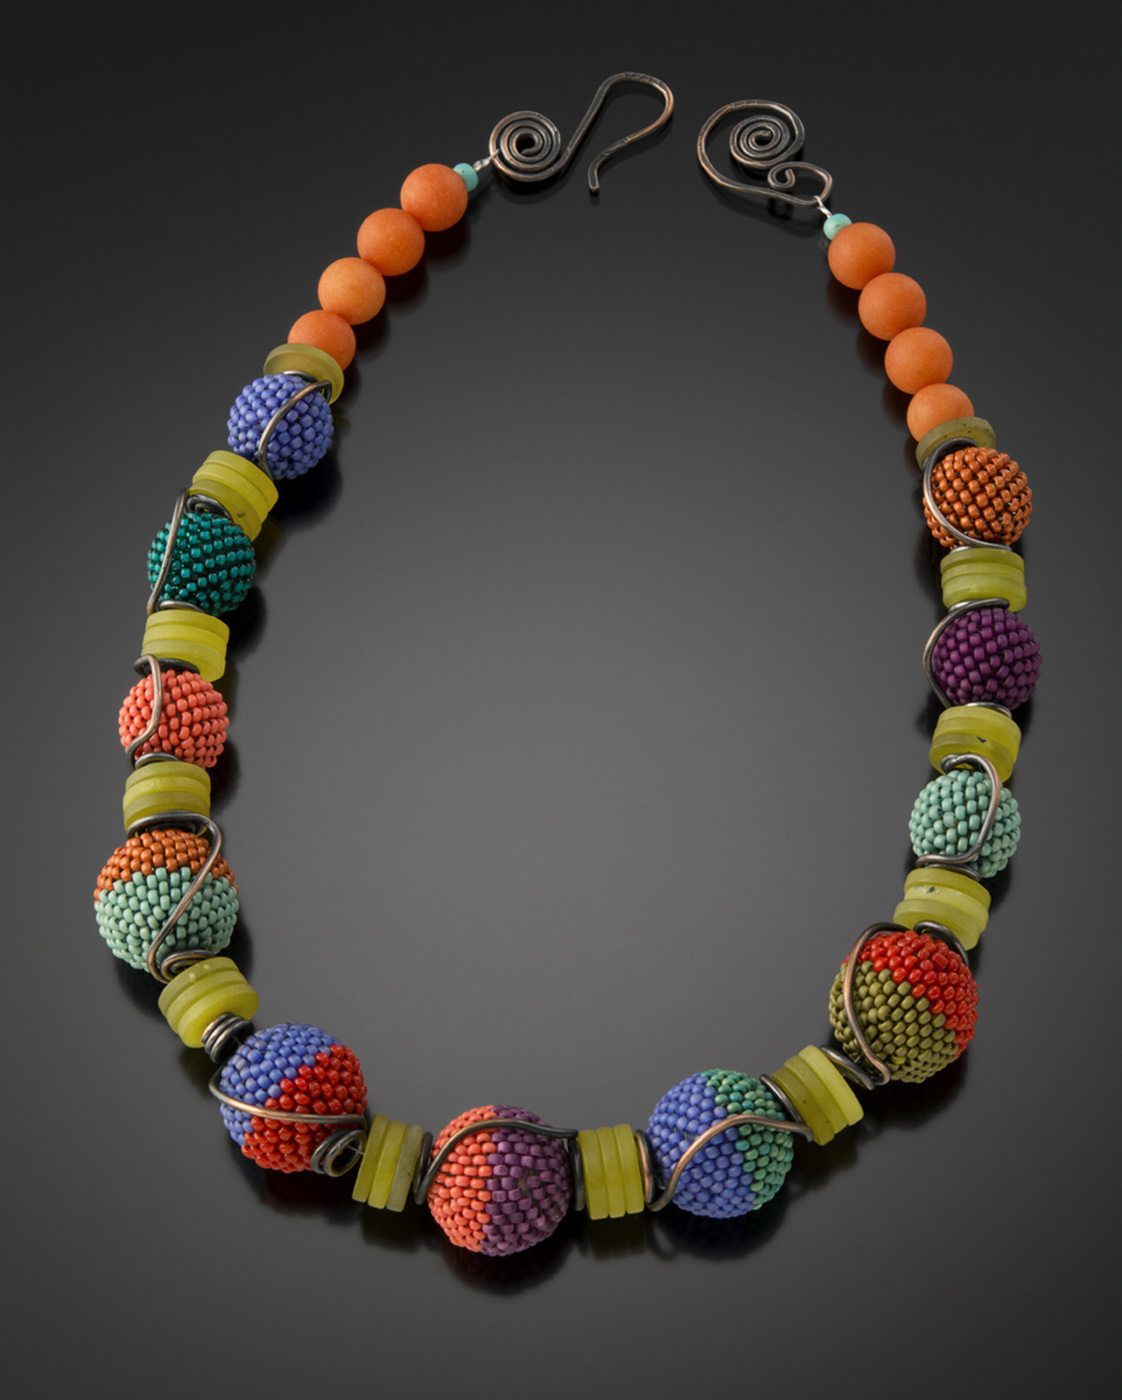 dian silver necklace sterling jewelry signature shop national beads by with malouf designers